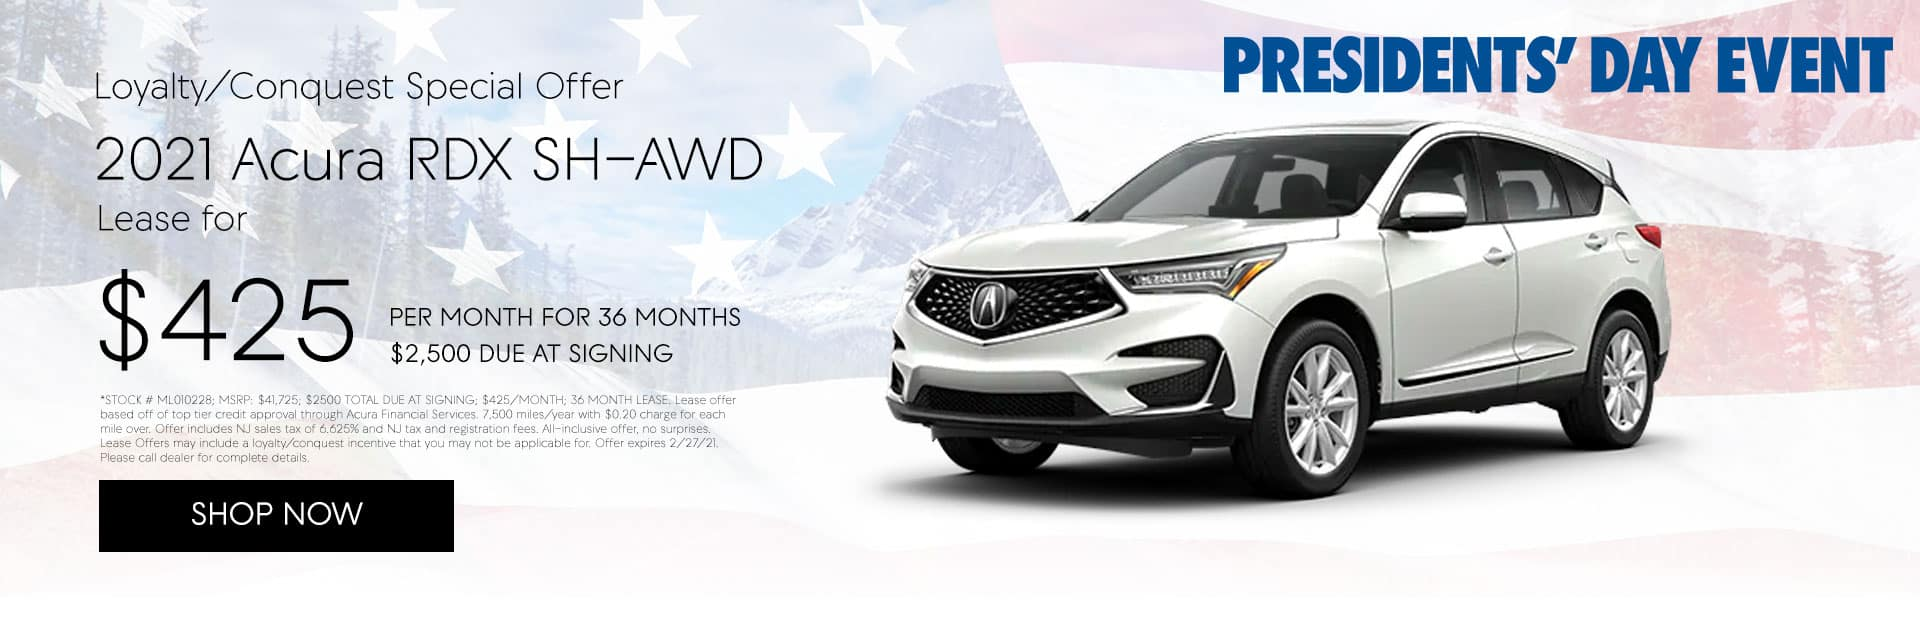 2021 ACURA RDX SH-AWD LOYALTY/CONQUEST OFFER Lease for $425/mo for 36 months with $2,500 due at signing*